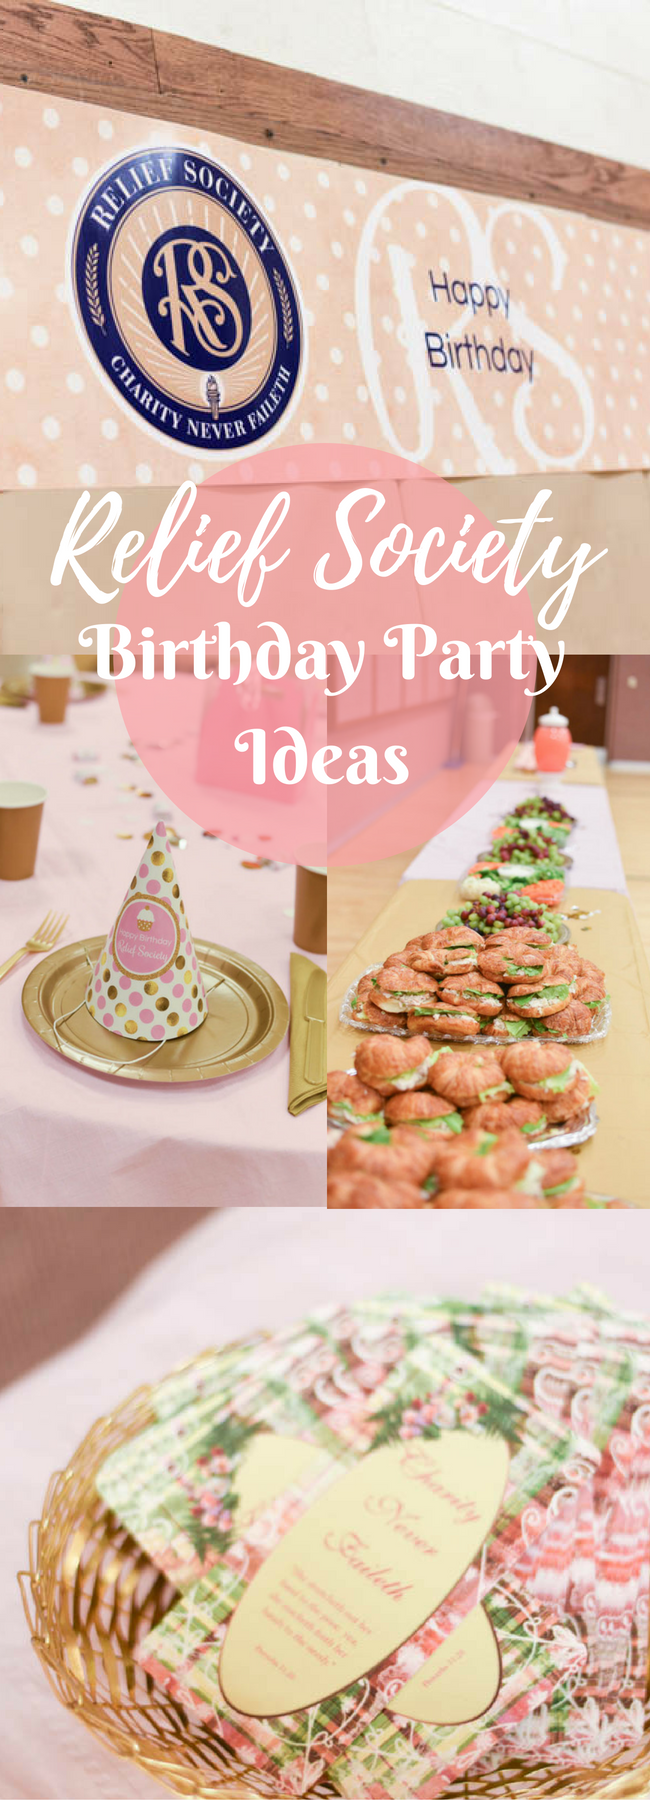 relief society activities / relief society birthday / relief society / relief society birthday ideas / relief society birthday gifts / relief society enrichment